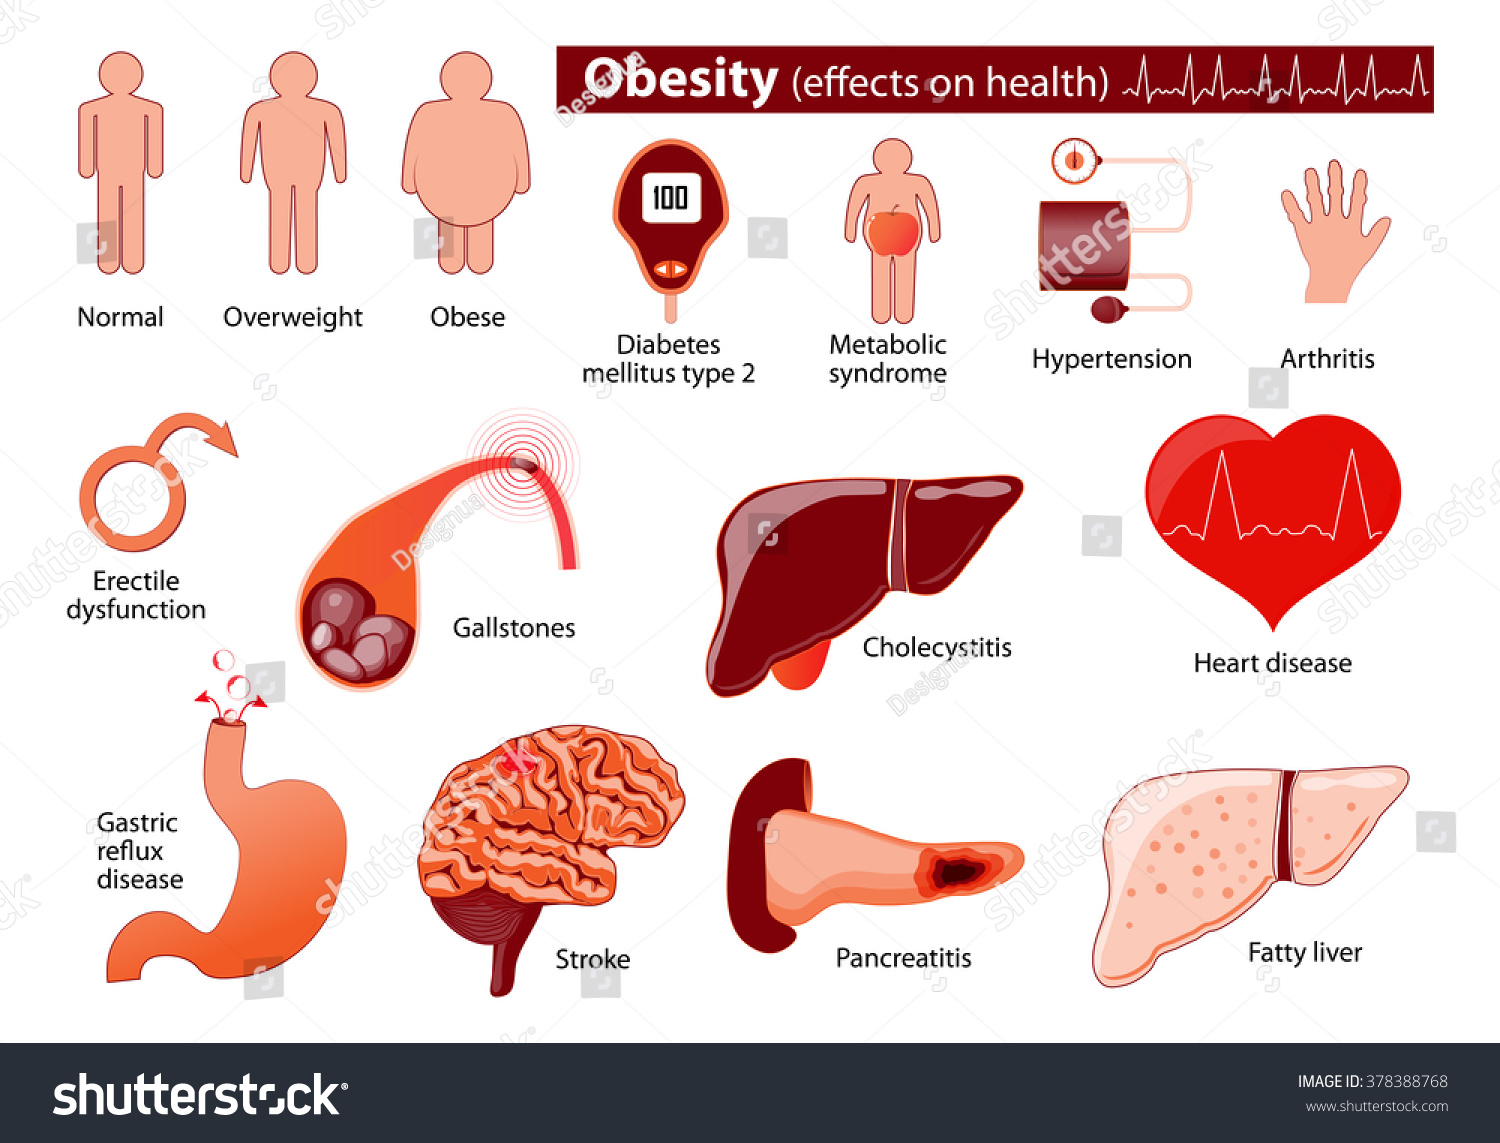 """the causes of heath problems and obesity in some countries Obesity is related to some of the leading causes of death, including  in lower- income countries, people with higher ses were more likely to  the implication is that while economic development improves health, """"problems of."""